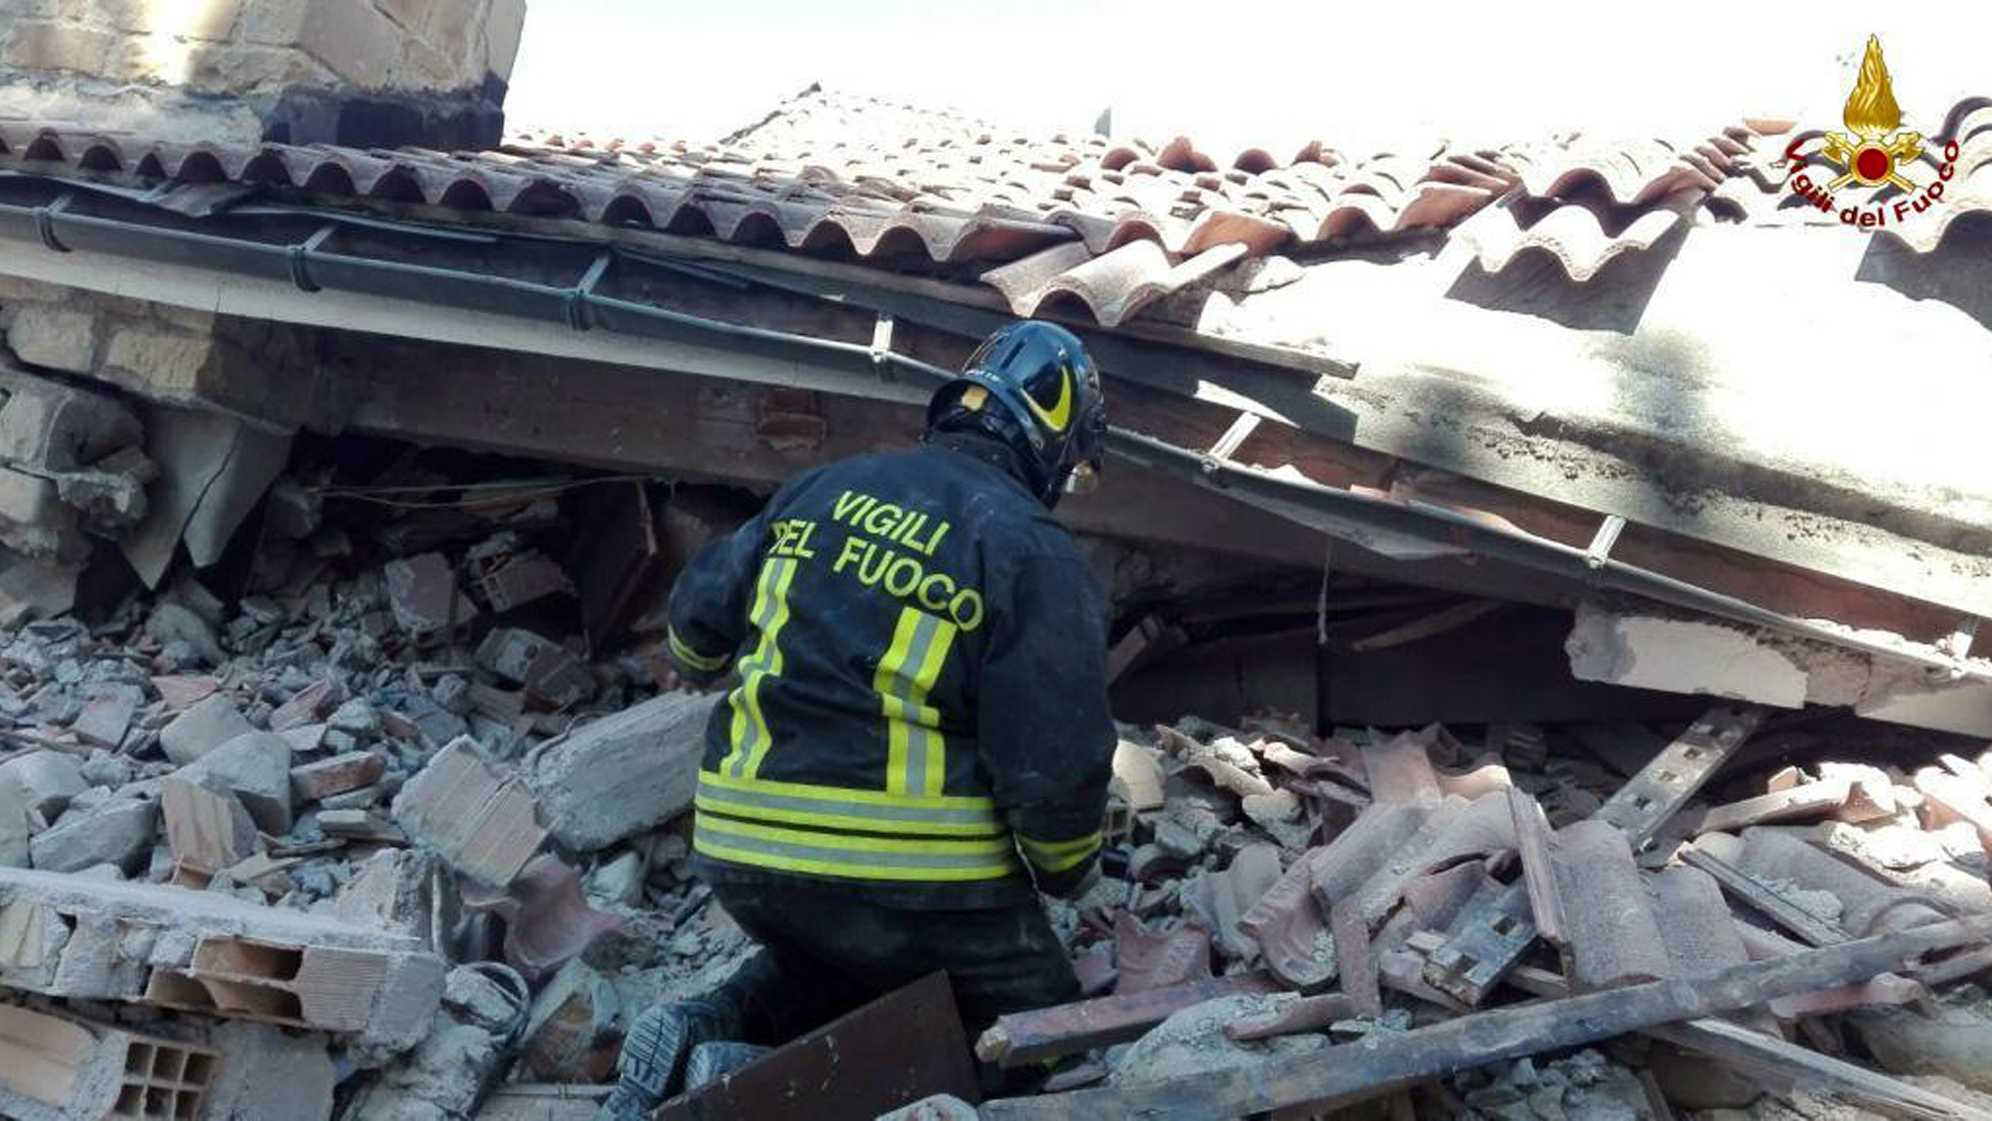 A firefighter searches through debris of a collapsed building following an earthquake in Amatrice, central Italy, Wednesday, Aug. 24, 2016. A strong earthquake in central Italy reduced three towns to rubble as people slept early Wednesday, with reports that as many as 50 people were killed and hundreds injured as rescue crews raced to dig out survivors.